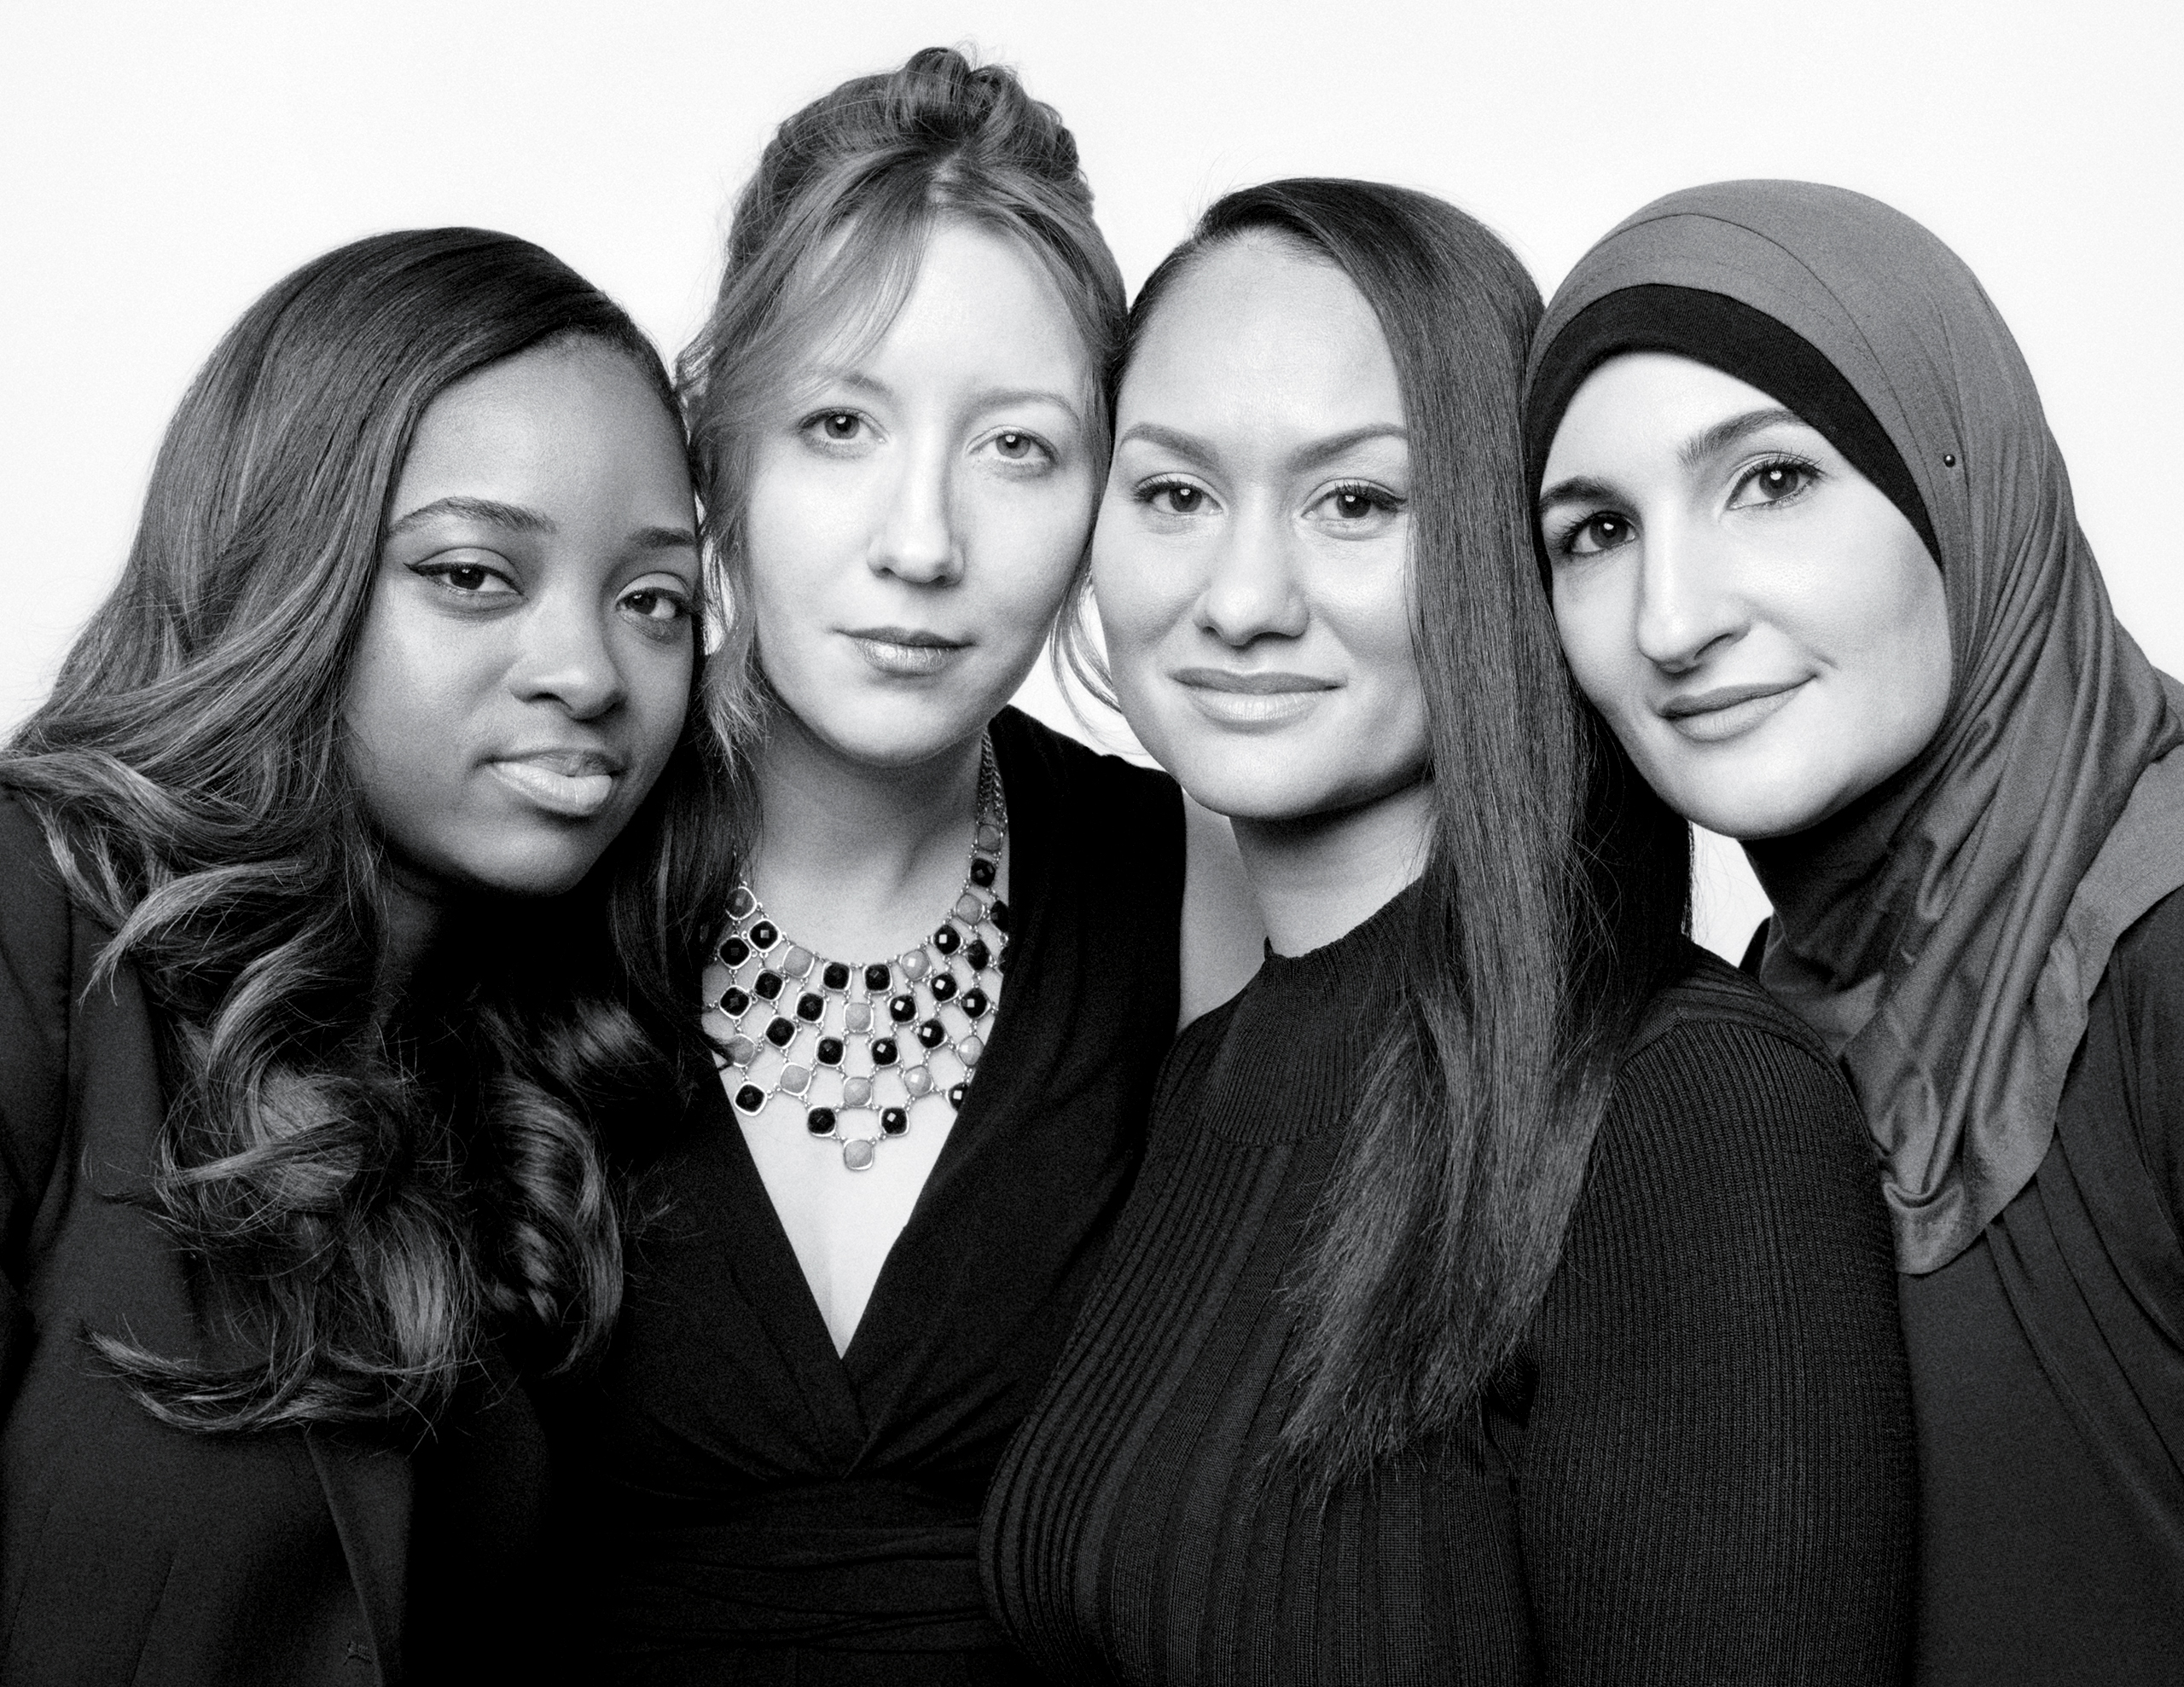 The Women's March was organized by Tamika Mallory, Bob Bland, Carmen Perez and Linda Sarsour